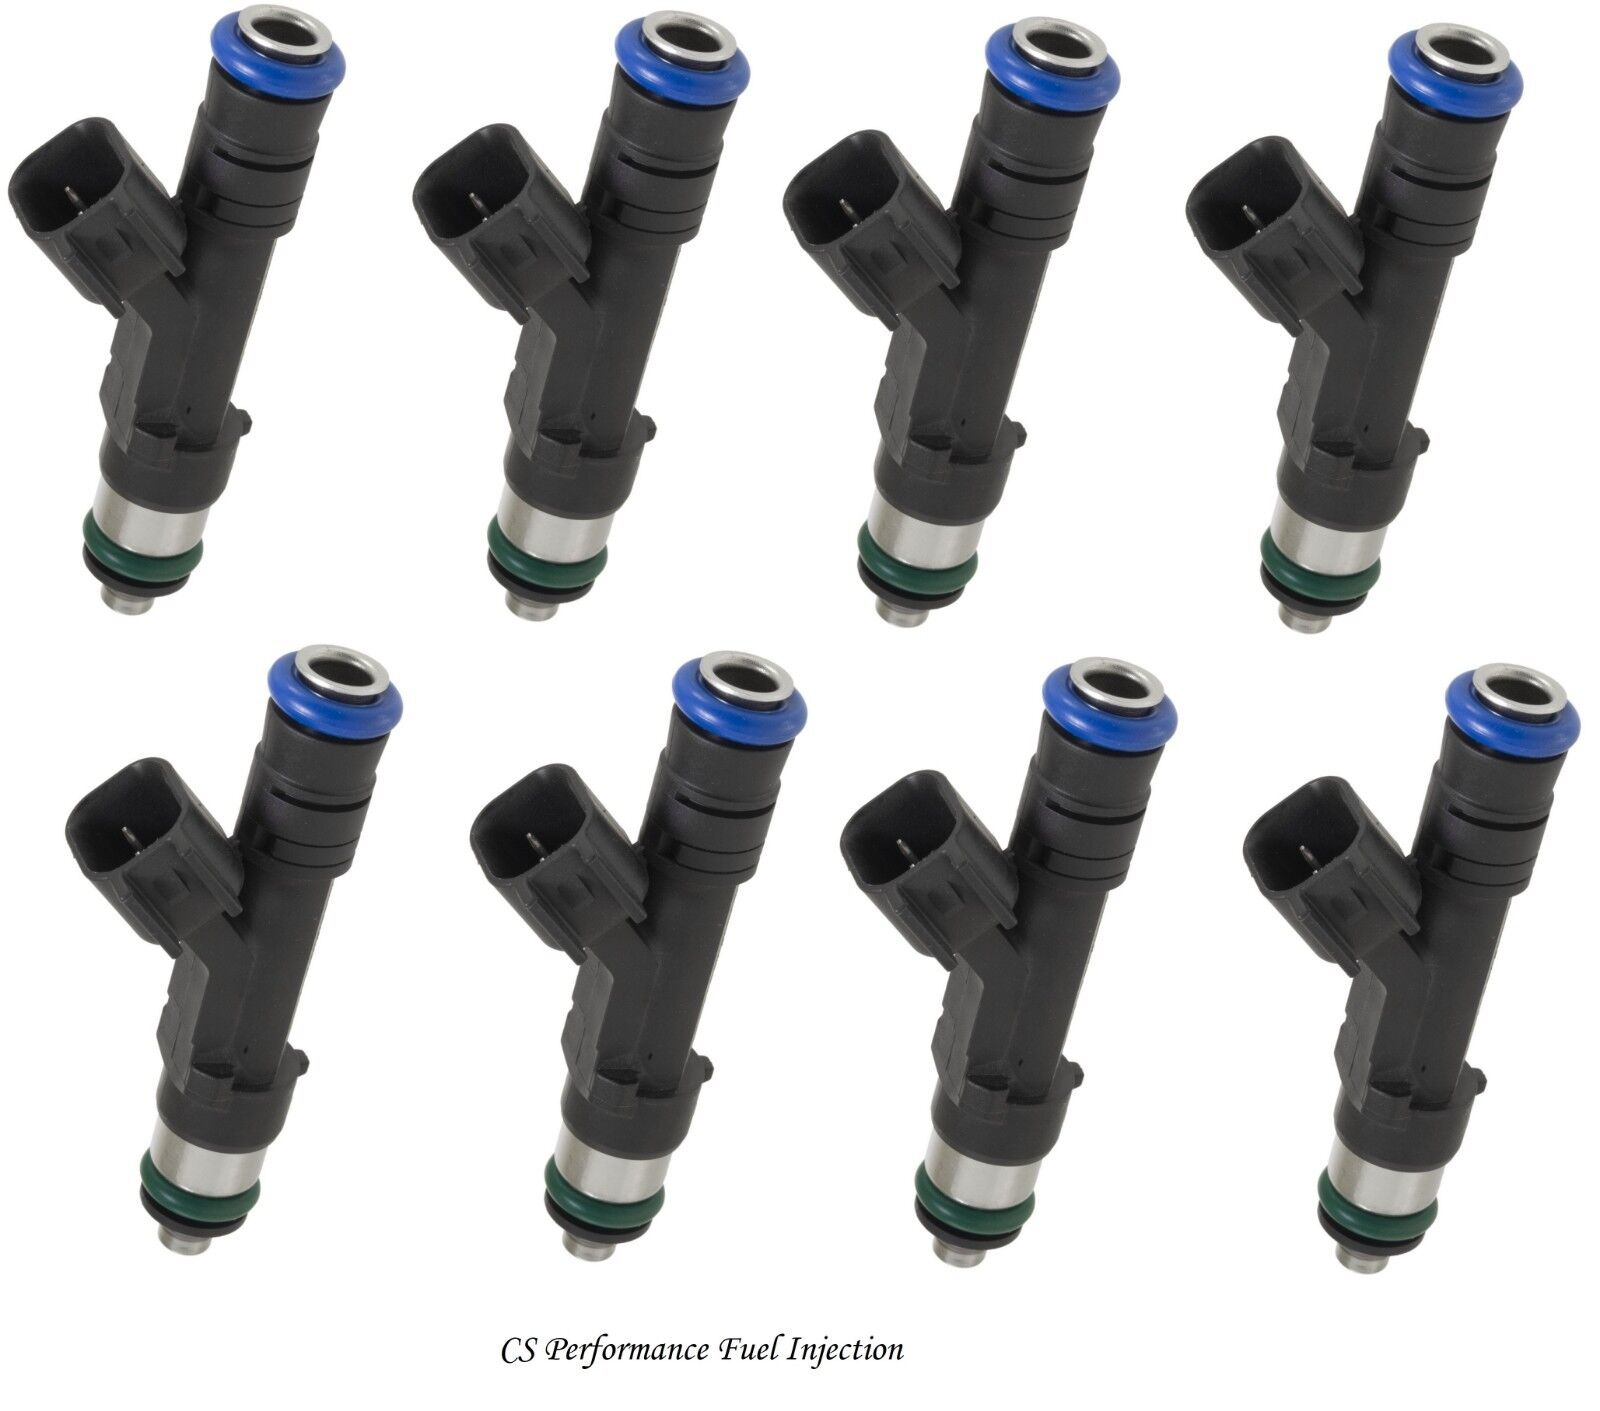 Series 5.4L 12 HOLE Upgrade 8pc OEM Bosch Fuel Injectors for 2003-2009 Ford E